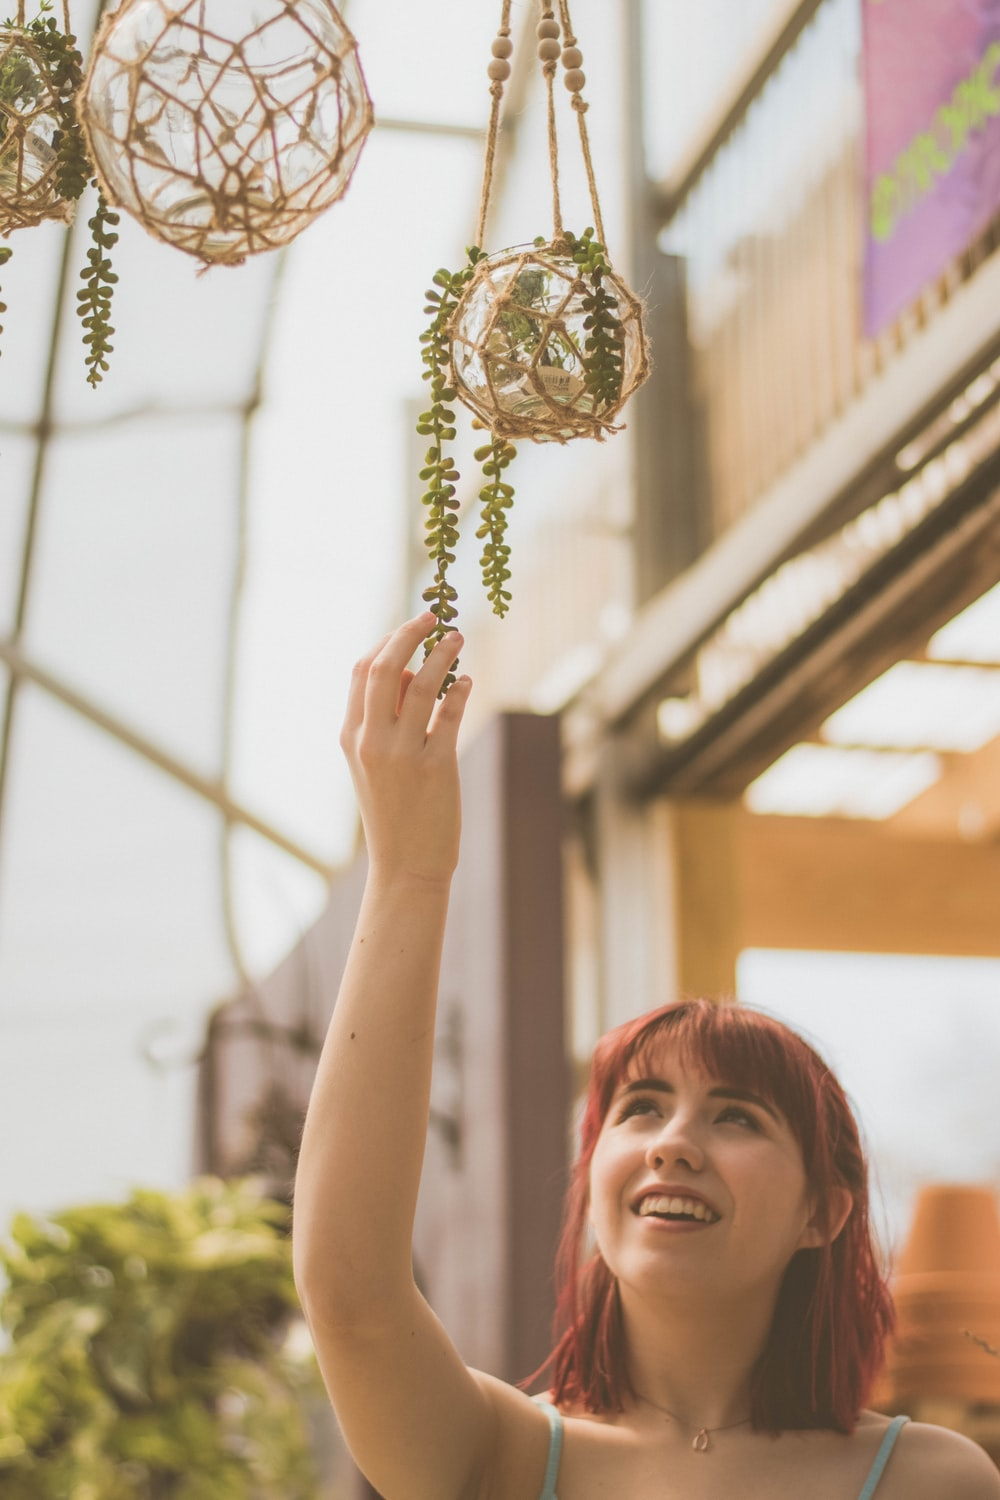 person holding green hanging plant